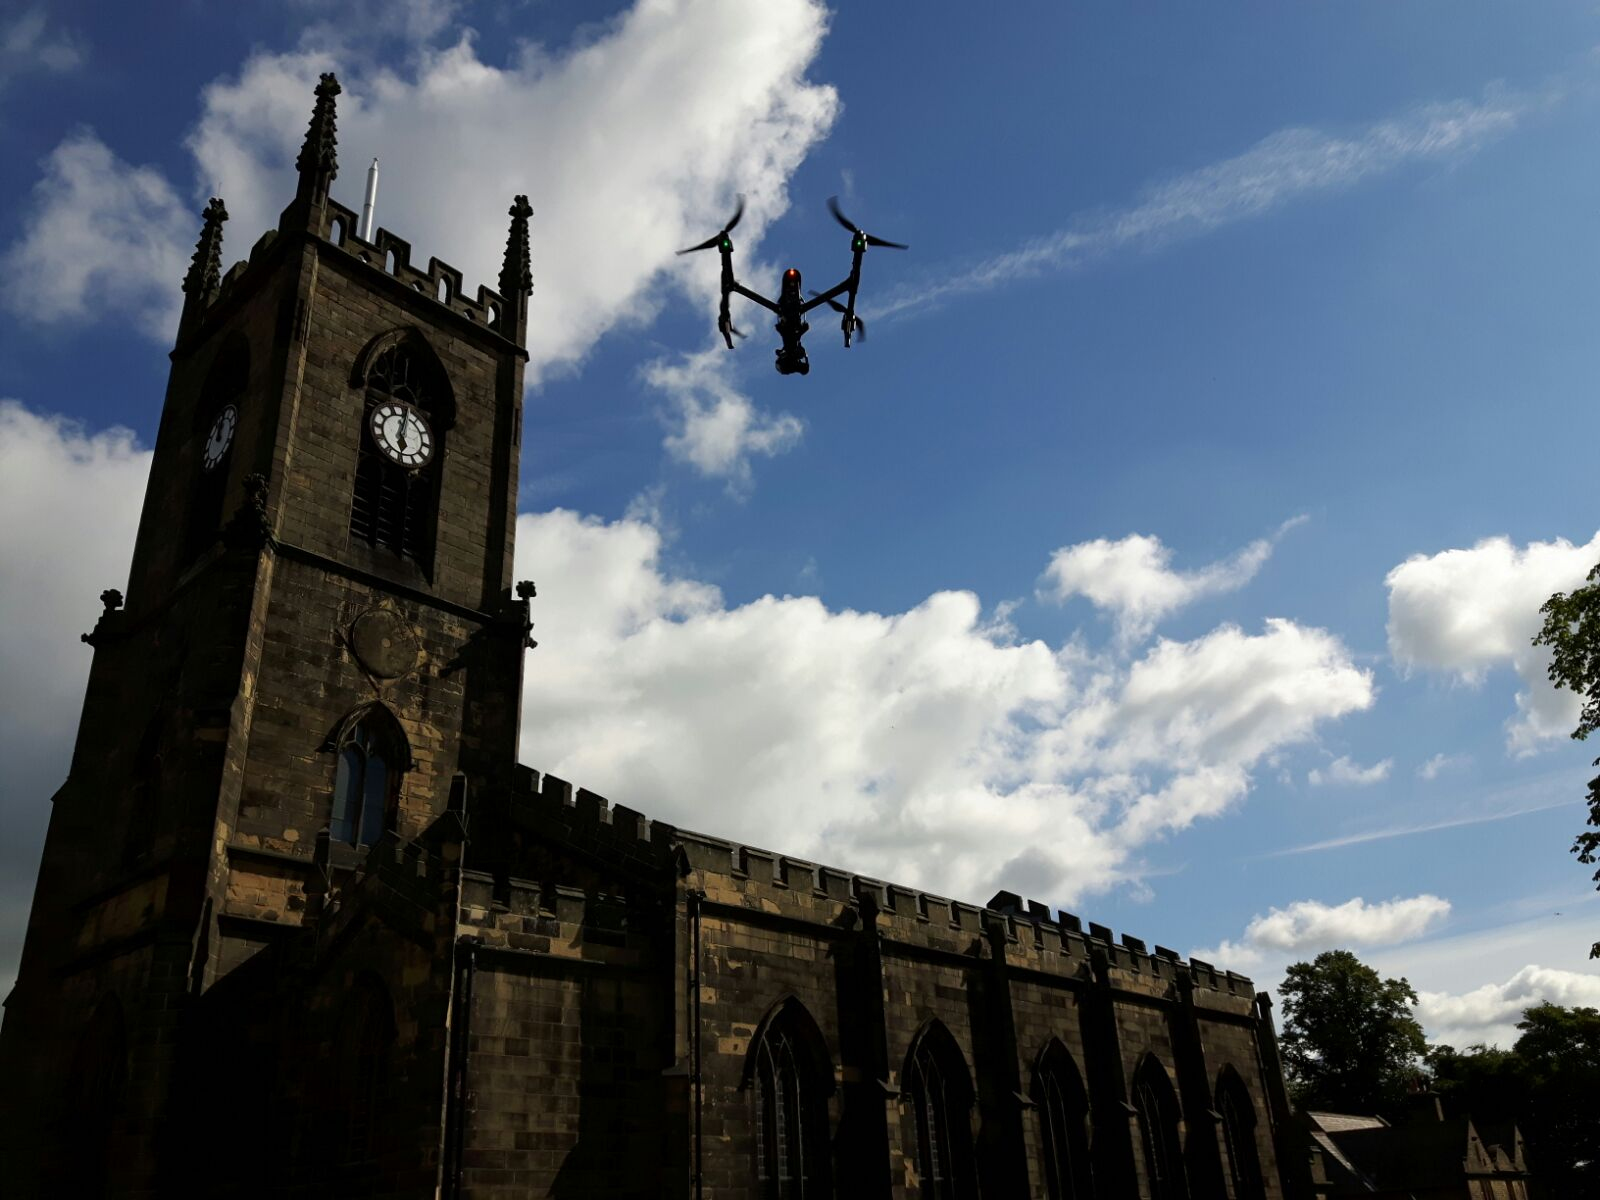 Drone building inspection and survey